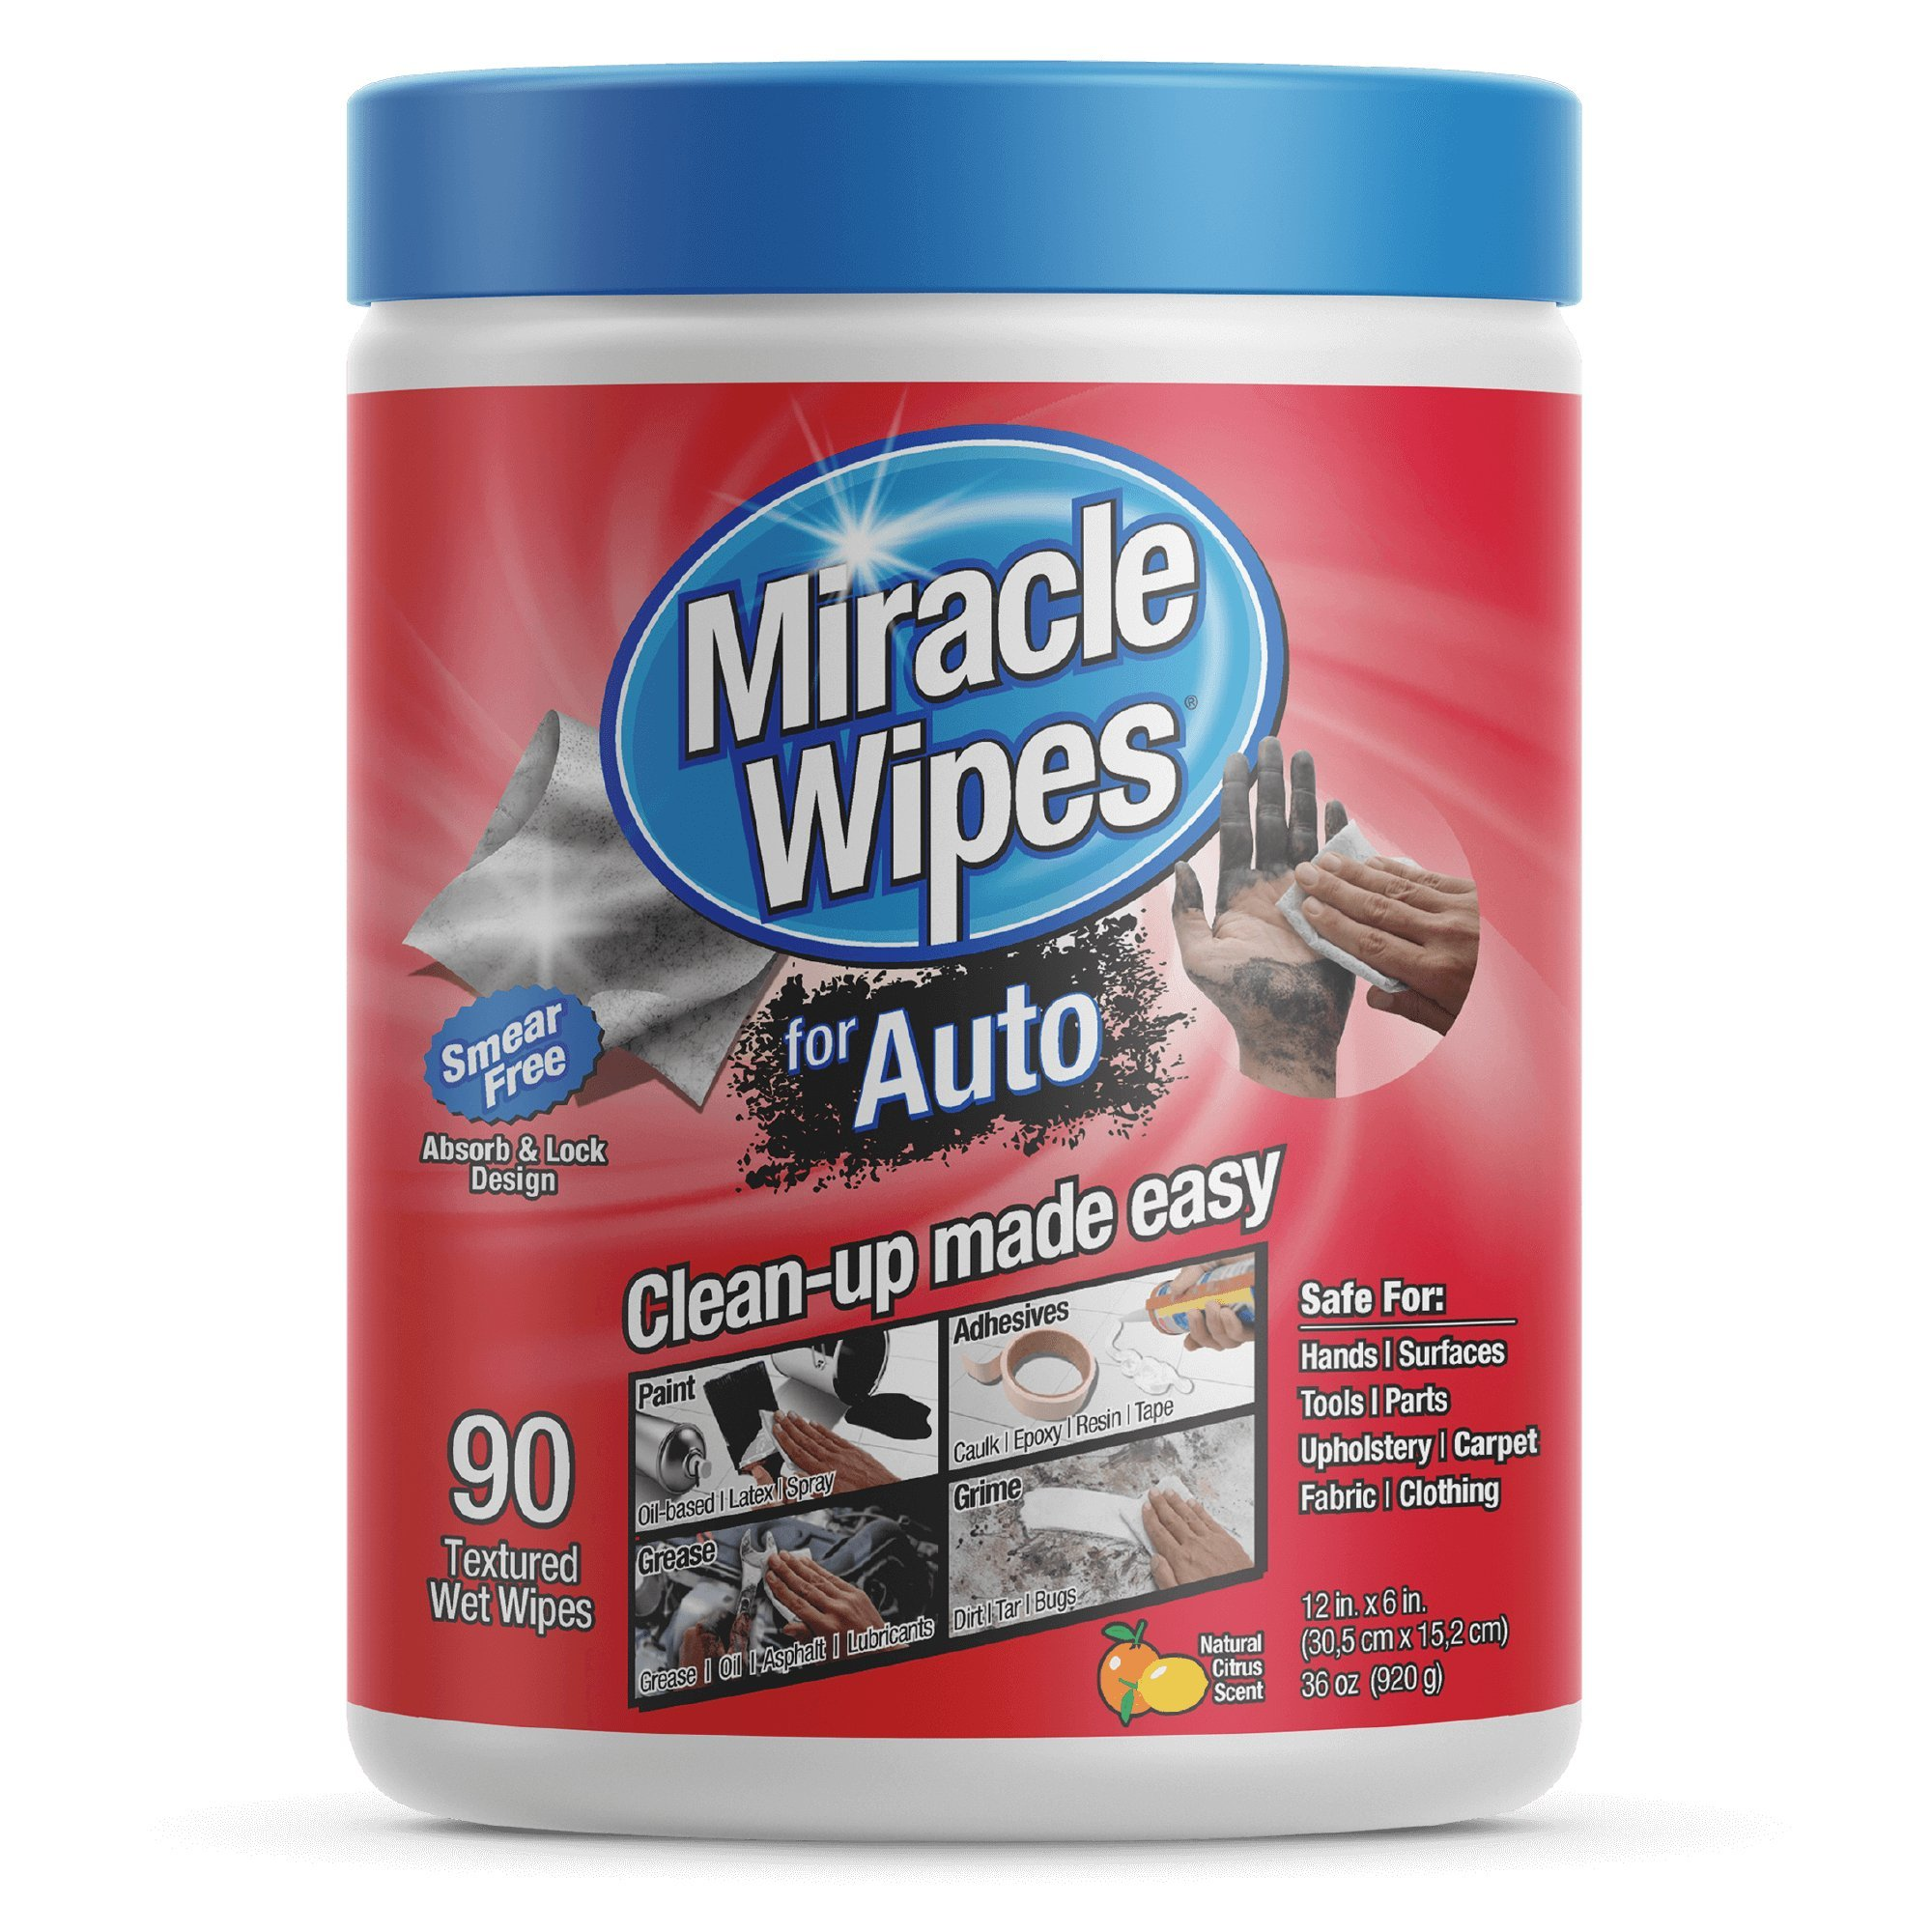 MiracleWipes Car Cleaning Supplies Wipes (90-Count) Multi-Purpose Car Interior Cleaner and Detailing | Removes Grease, Lubricants, Sticky Adhesives, Grime | Made in the USA by MiracleWipes (Image #1)